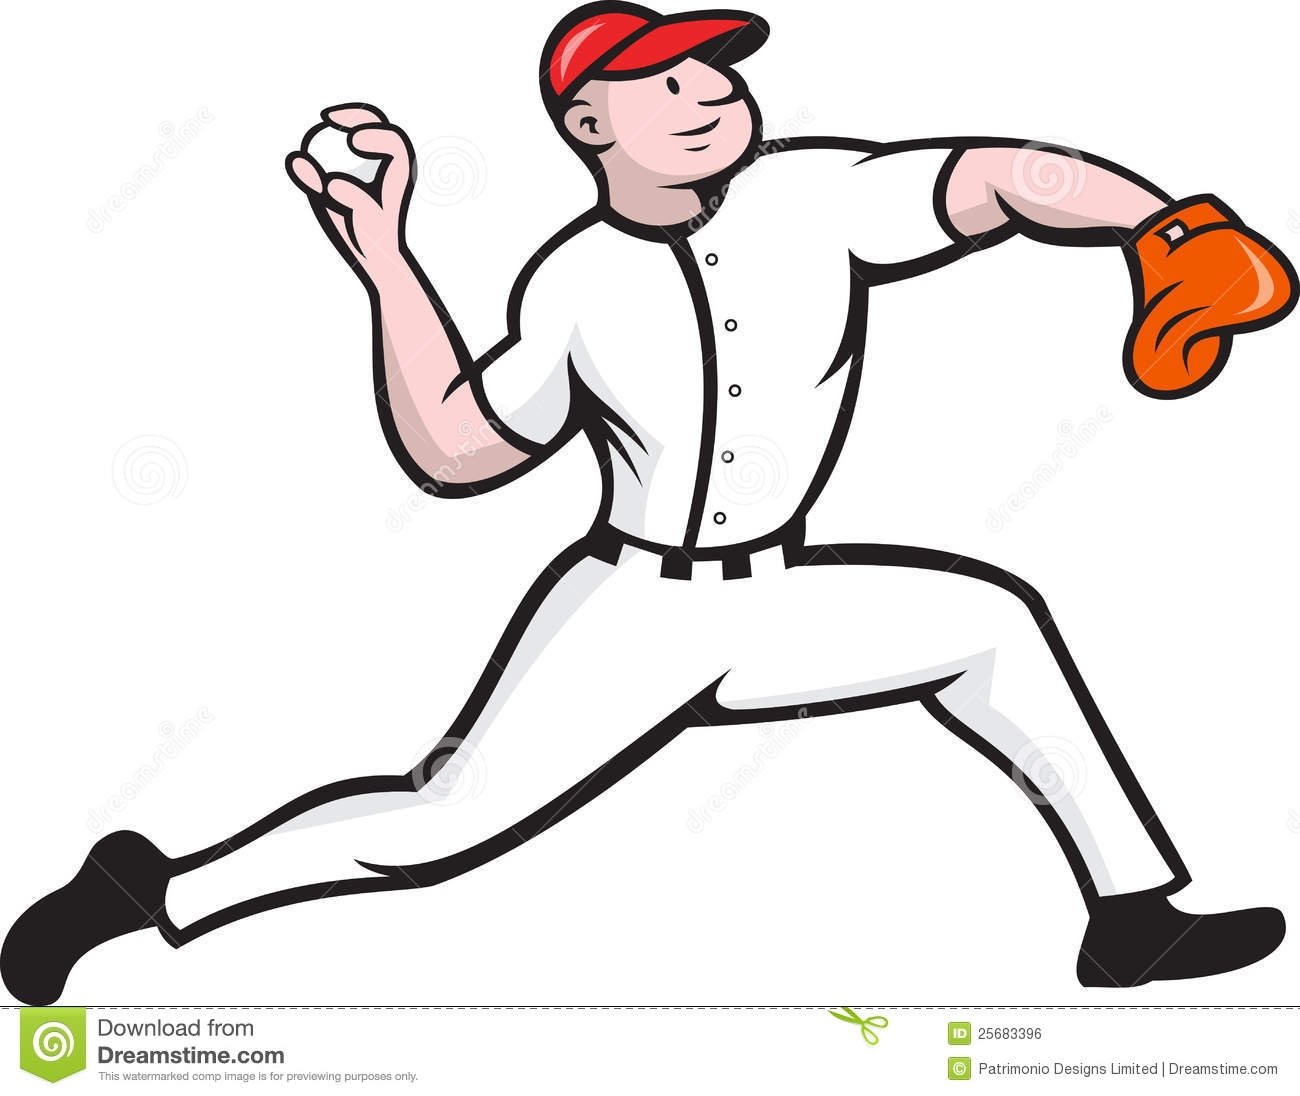 Baseball Pitcher Clipart No Background. -Baseball Pitcher Clipart No Background. 12435798-throwing-baseball- .-4